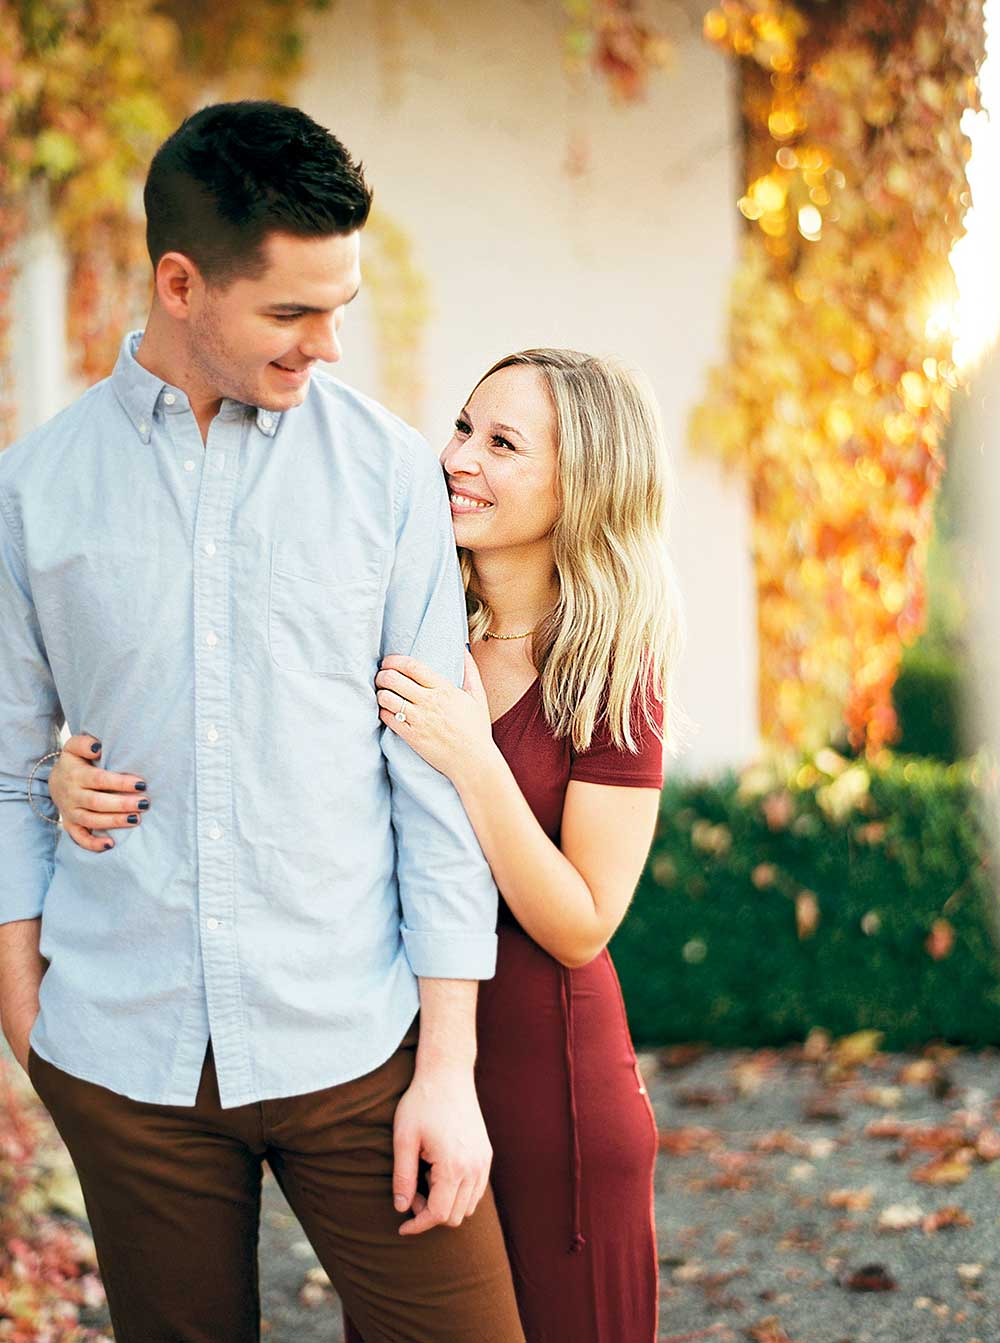 Couple smiling during engagement session.